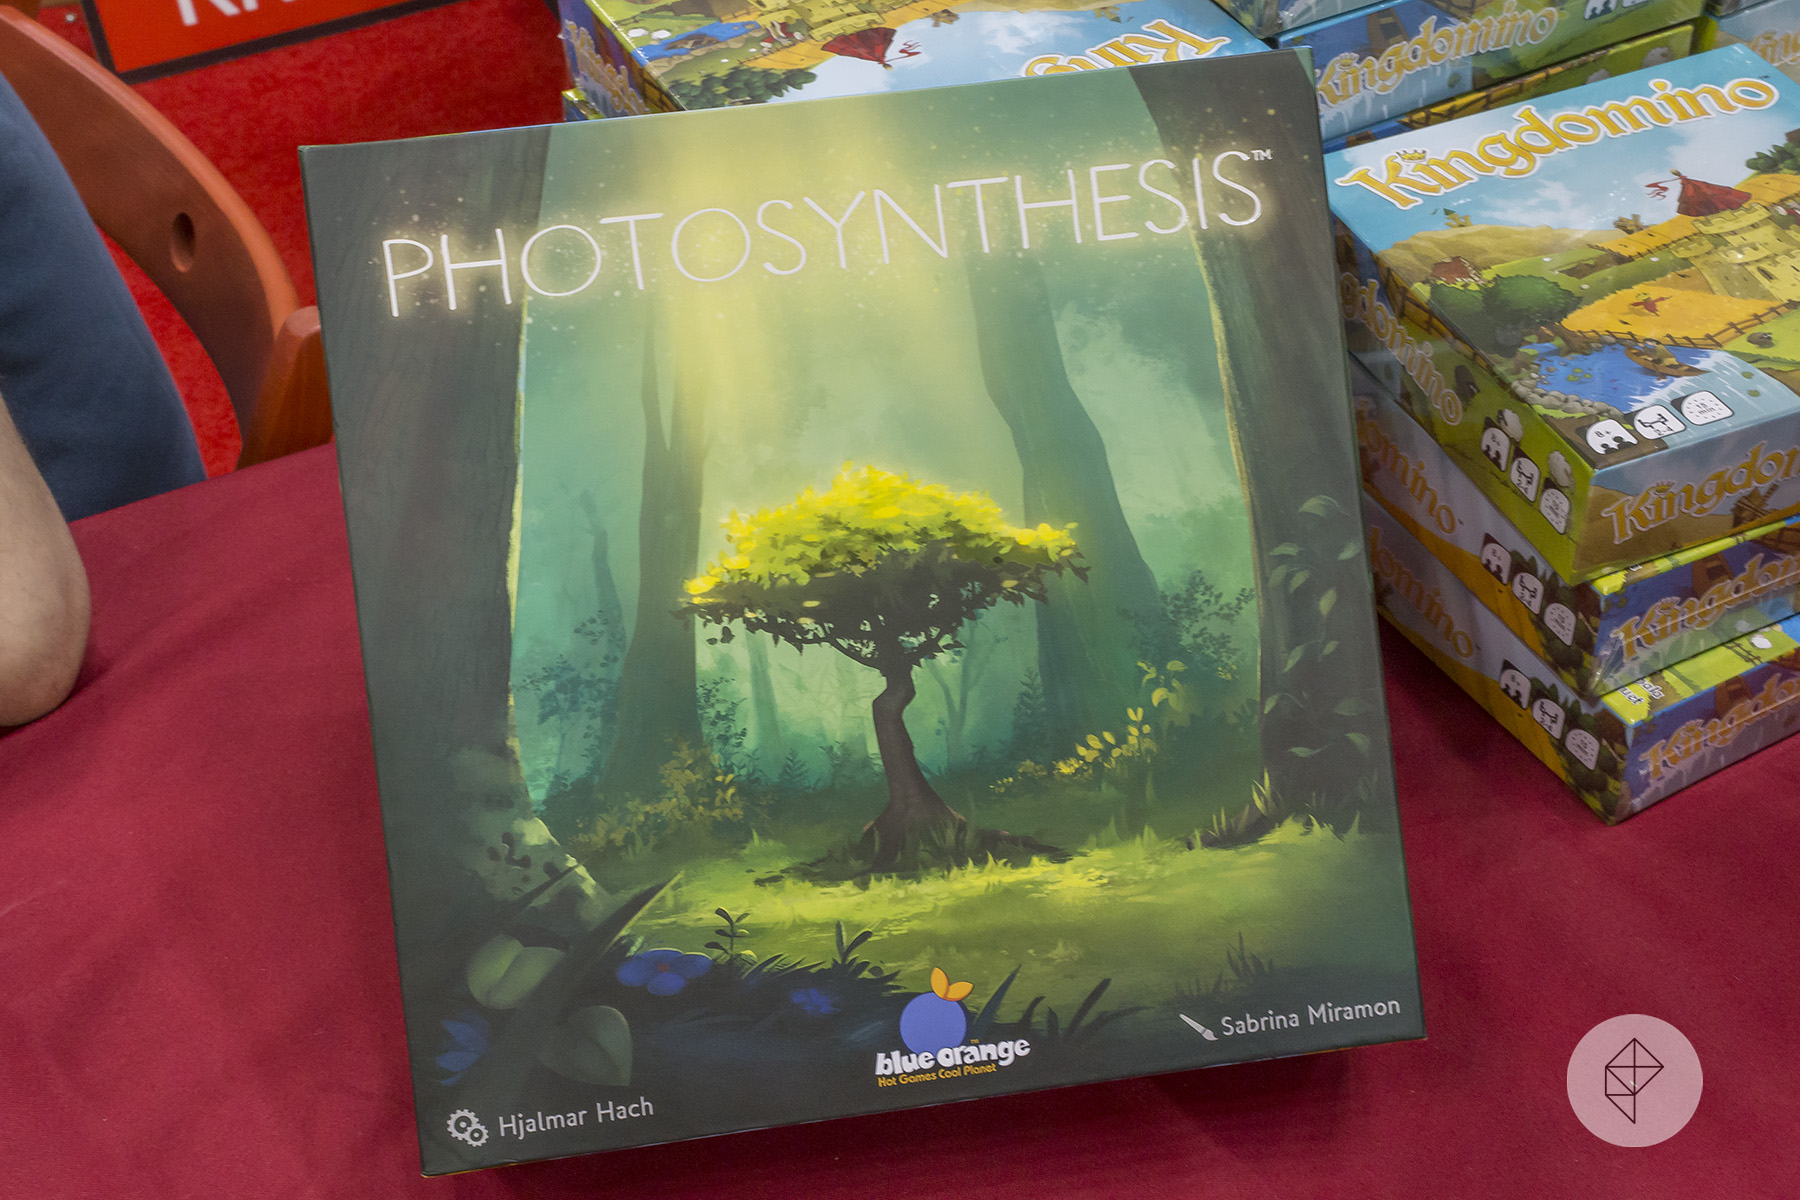 The cover of Photosynthesis shows a small tree in a forest clearing. Bright sunlight streams down.